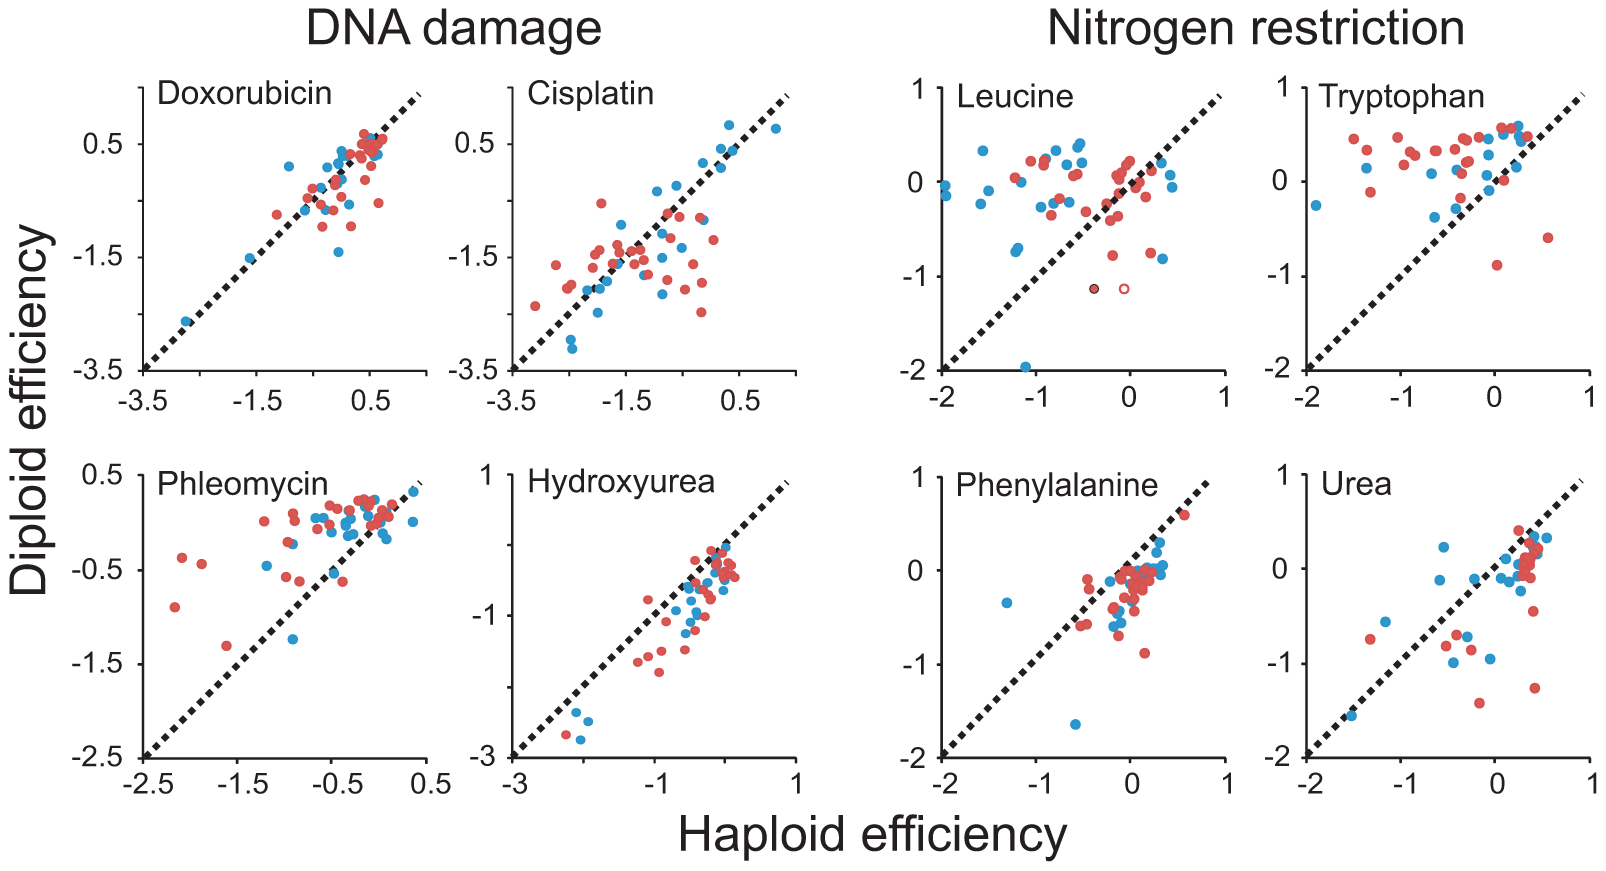 Patterns of ploidy–environment interactions refute generalizing hypotheses on the effects of mutational load, toxin exposure, and nutrient restriction.